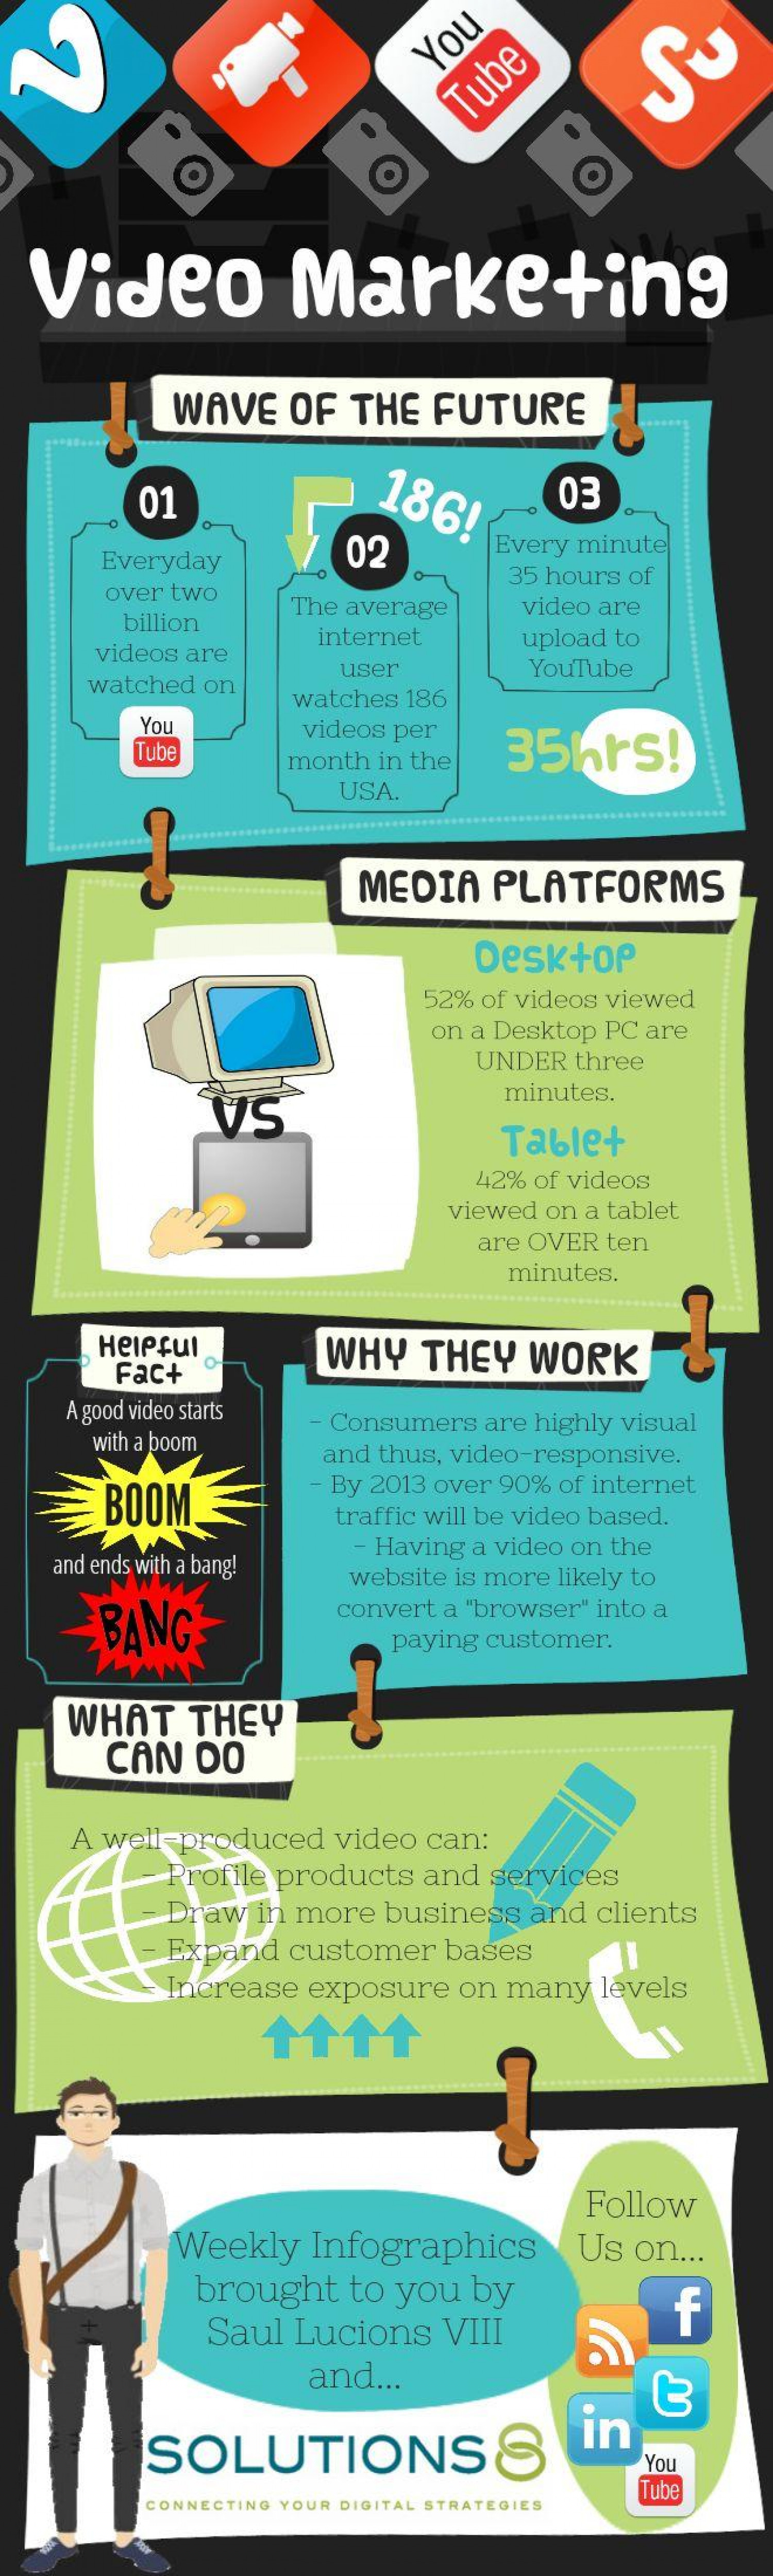 Video Marketing - The Wave of Future Infographic